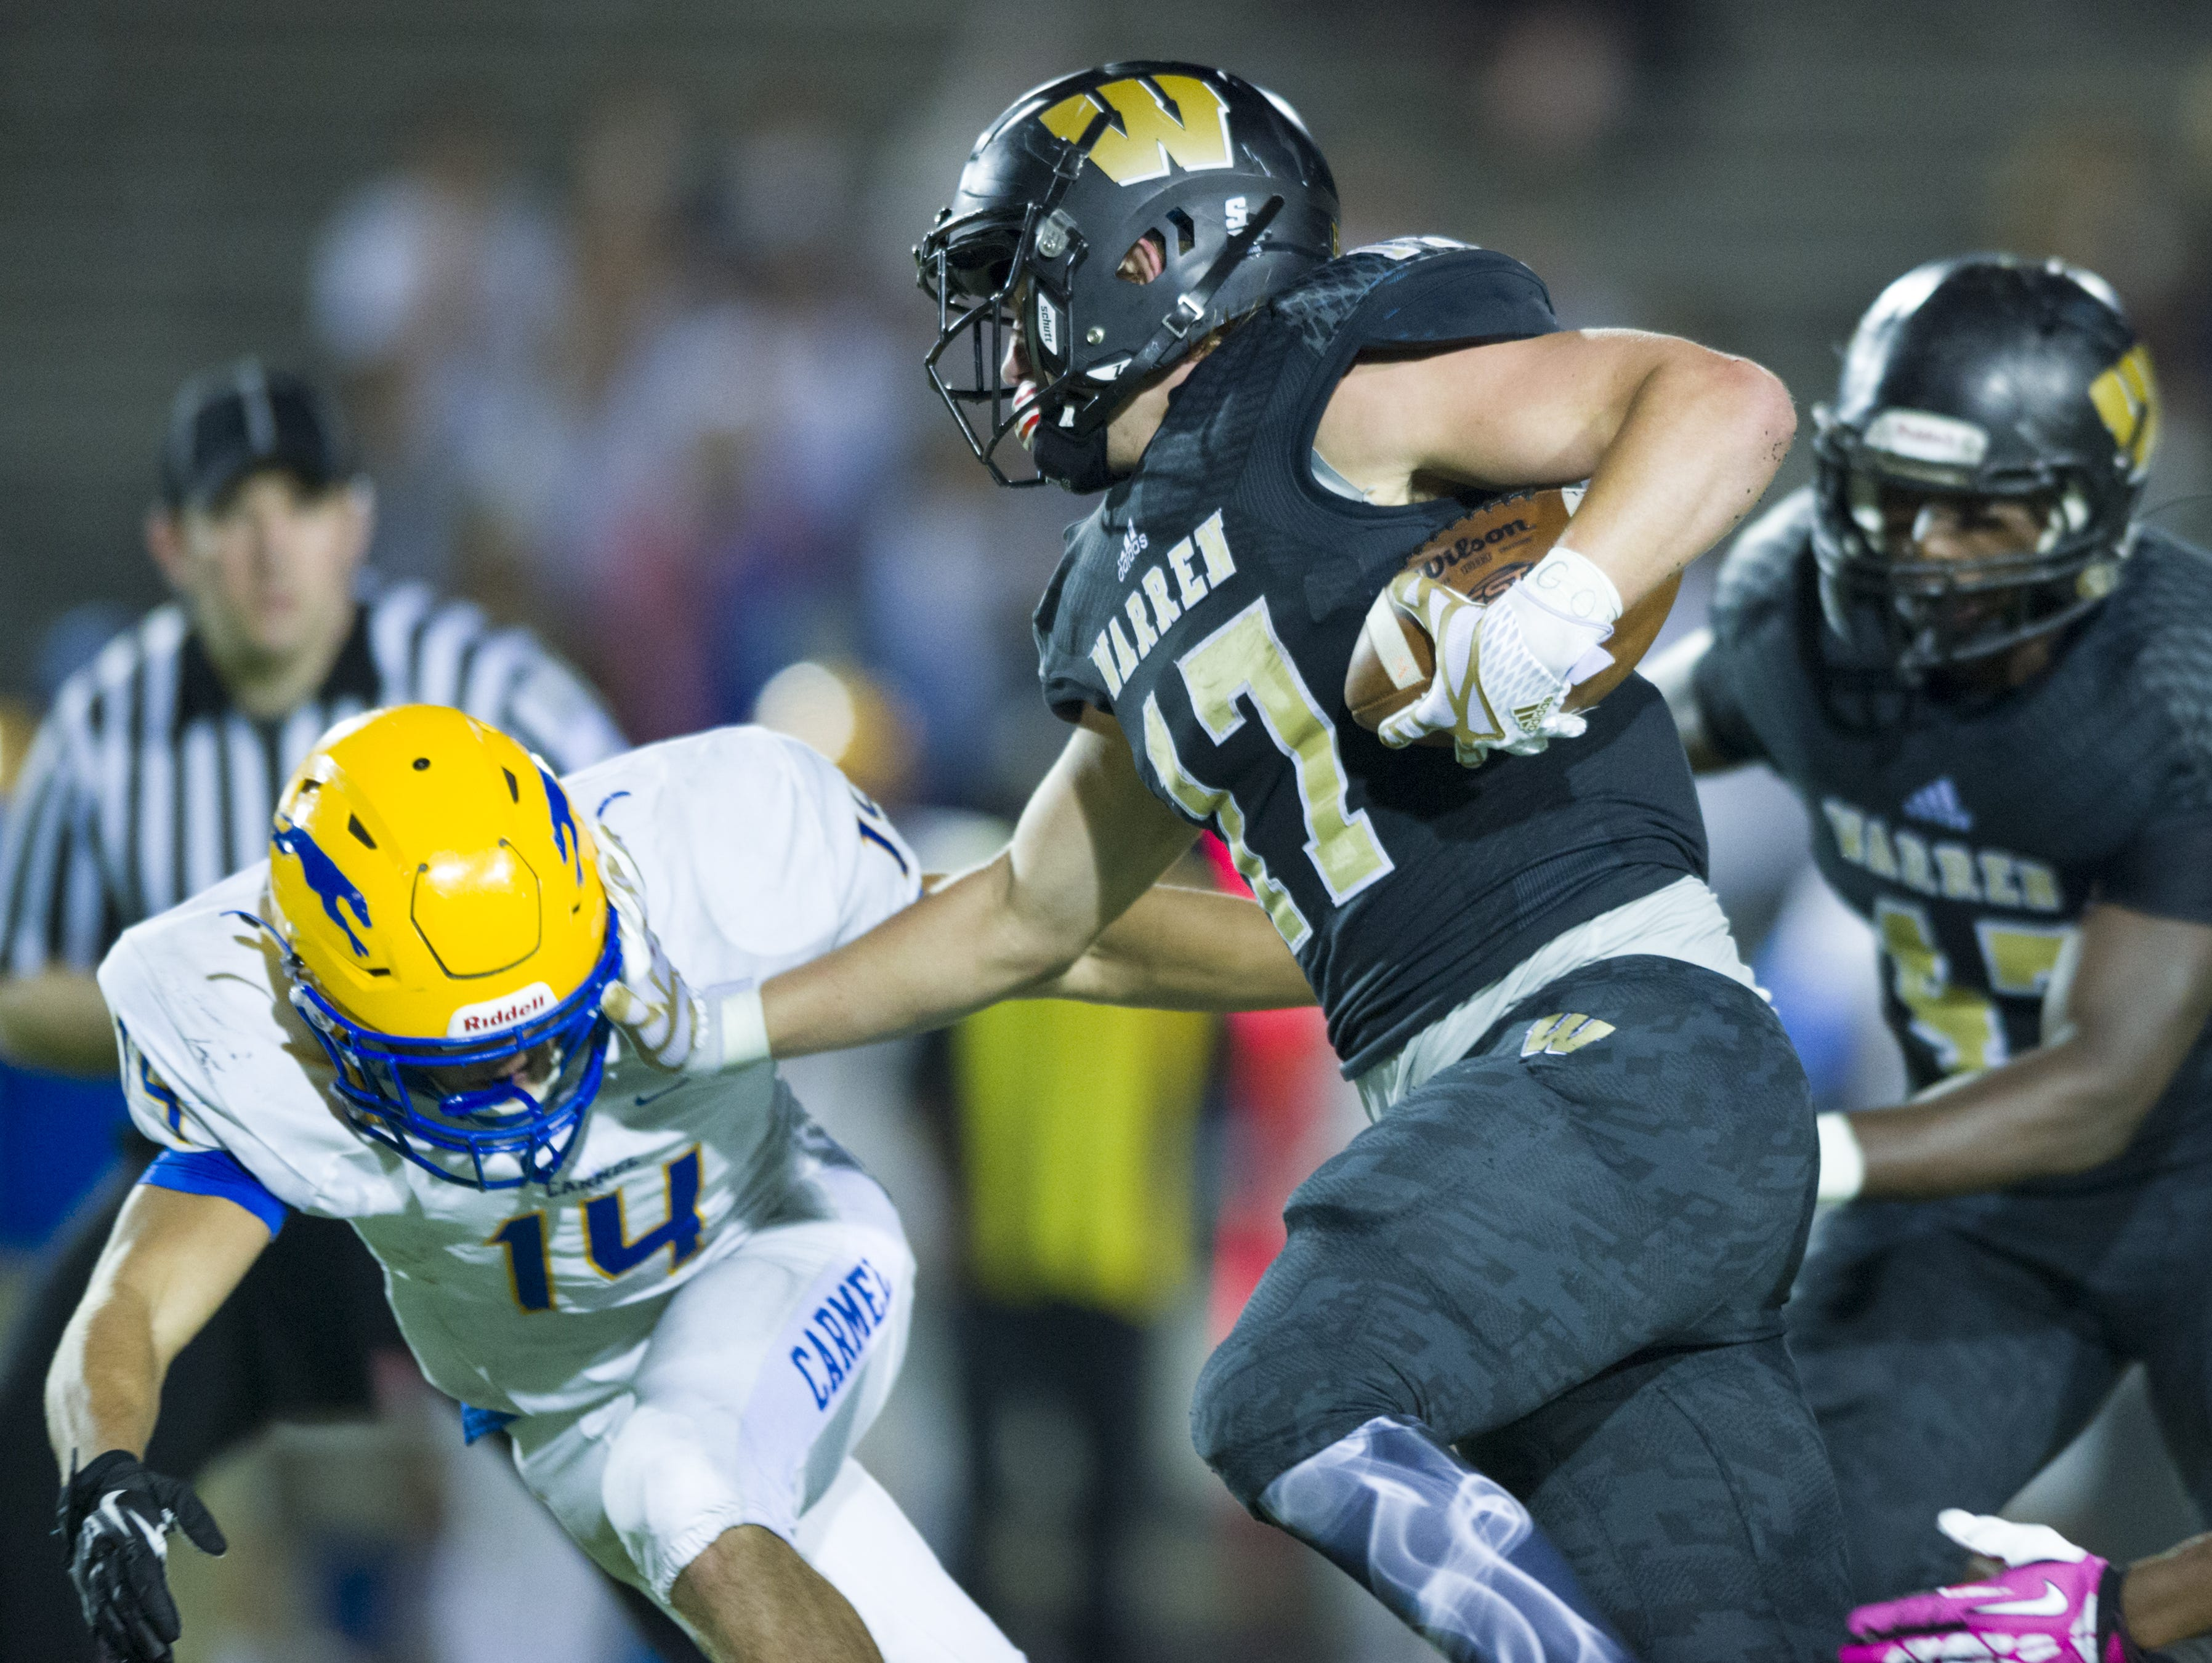 Warren Central senior Tristen Tonte (17) rushes the ball upfield and into the end zone to score during the second half of the game. Warren Central High School hosted Carmel High School in IHSAA varsity football action, Oct. 7, 2016. Warren Central won 40-30.